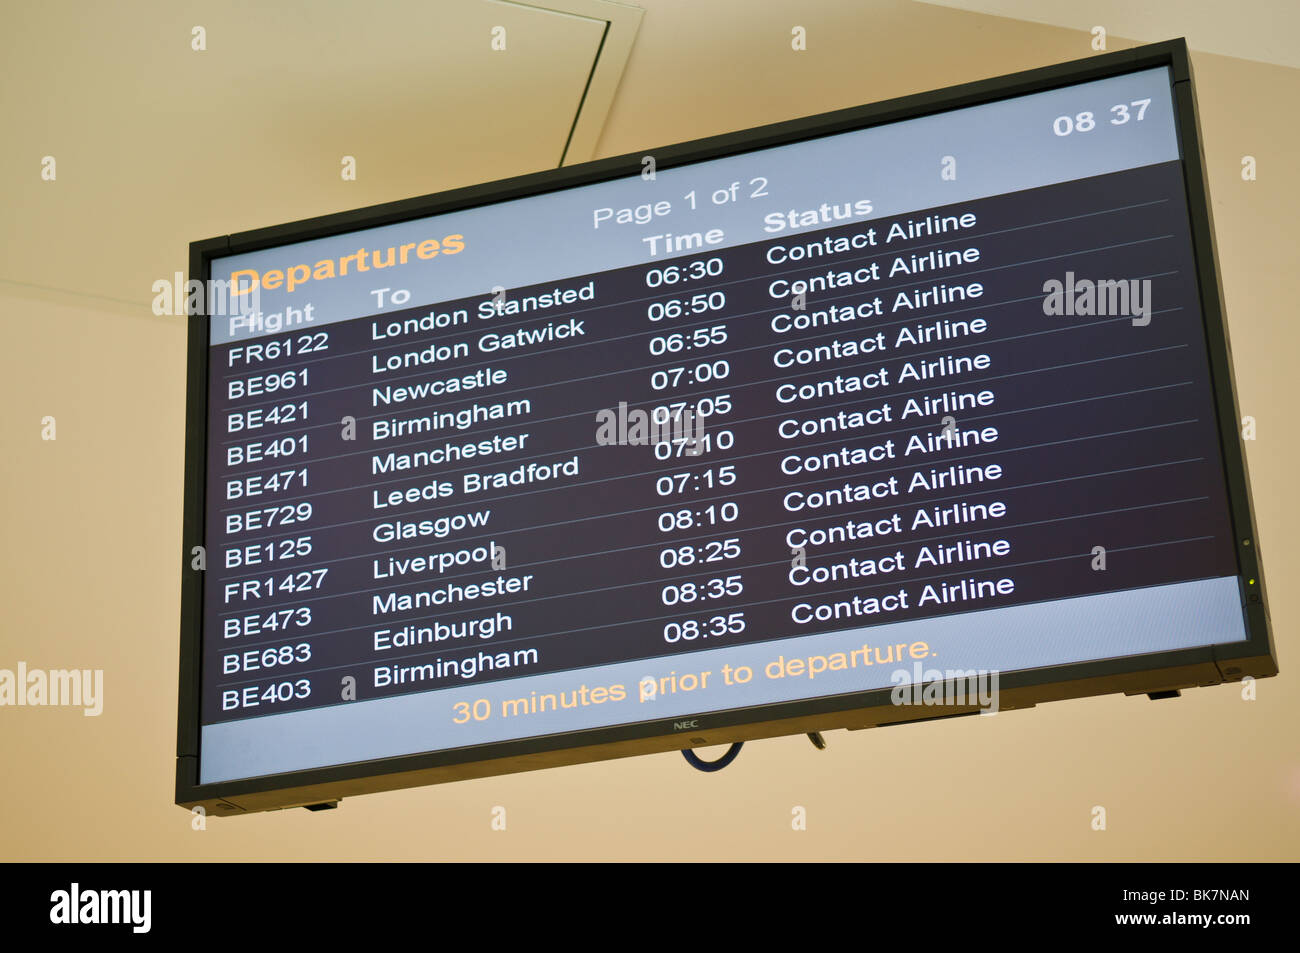 Departure board showing flights canceled, and to contact airline - Stock Image